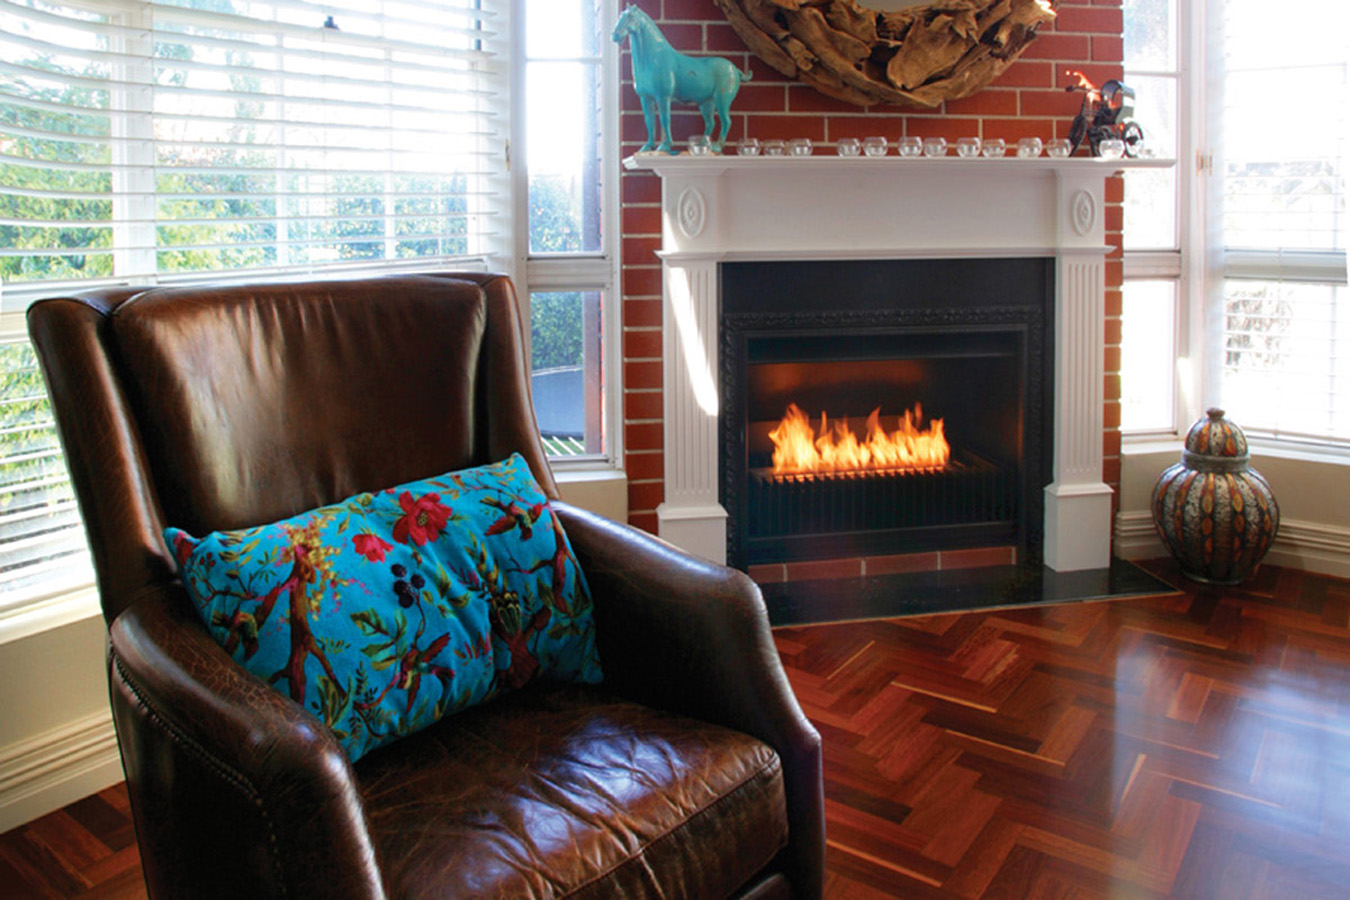 ECOSMARTFIRE HOME FIREPLACE GRATES